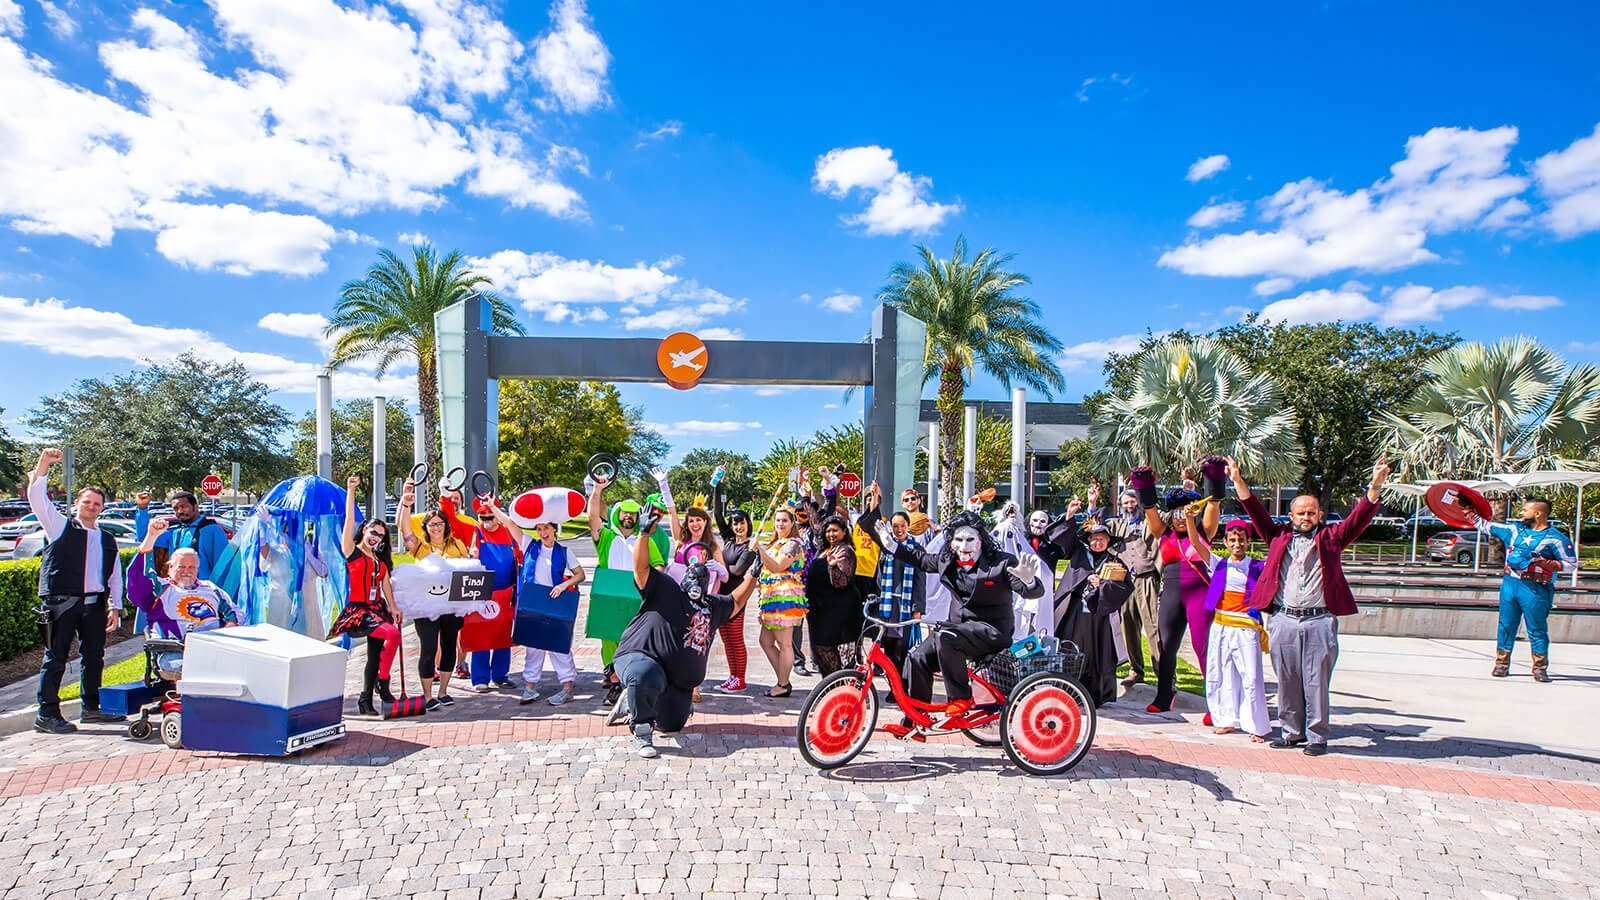 Staff and faculty posing under the Full Sail archway, wearing their Halloween costumes